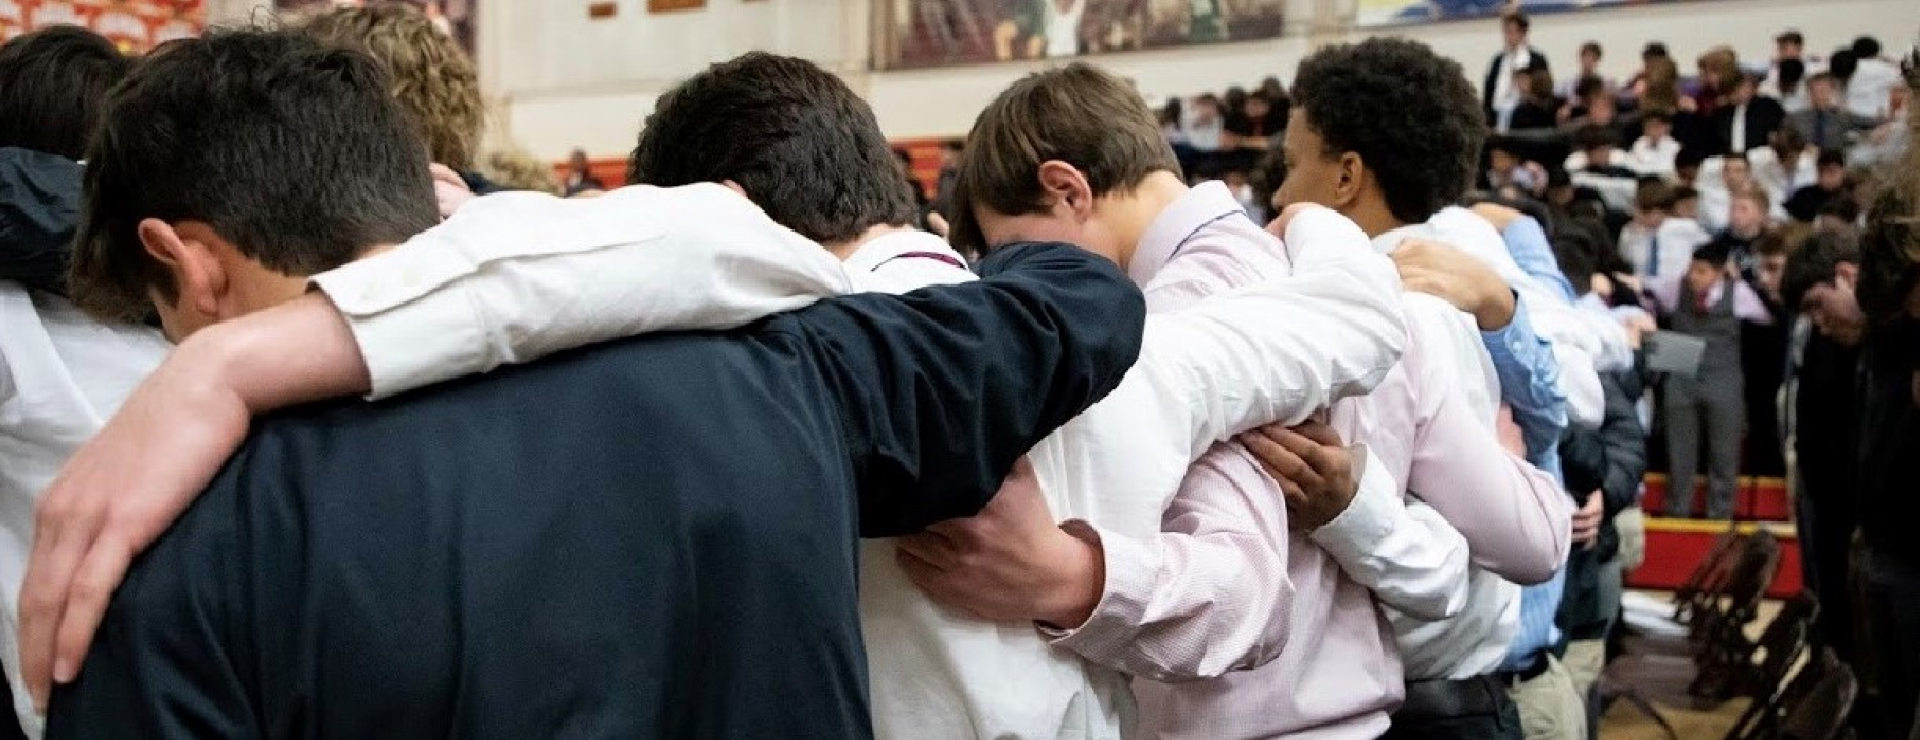 boys at Mass with hands over shoulders praying